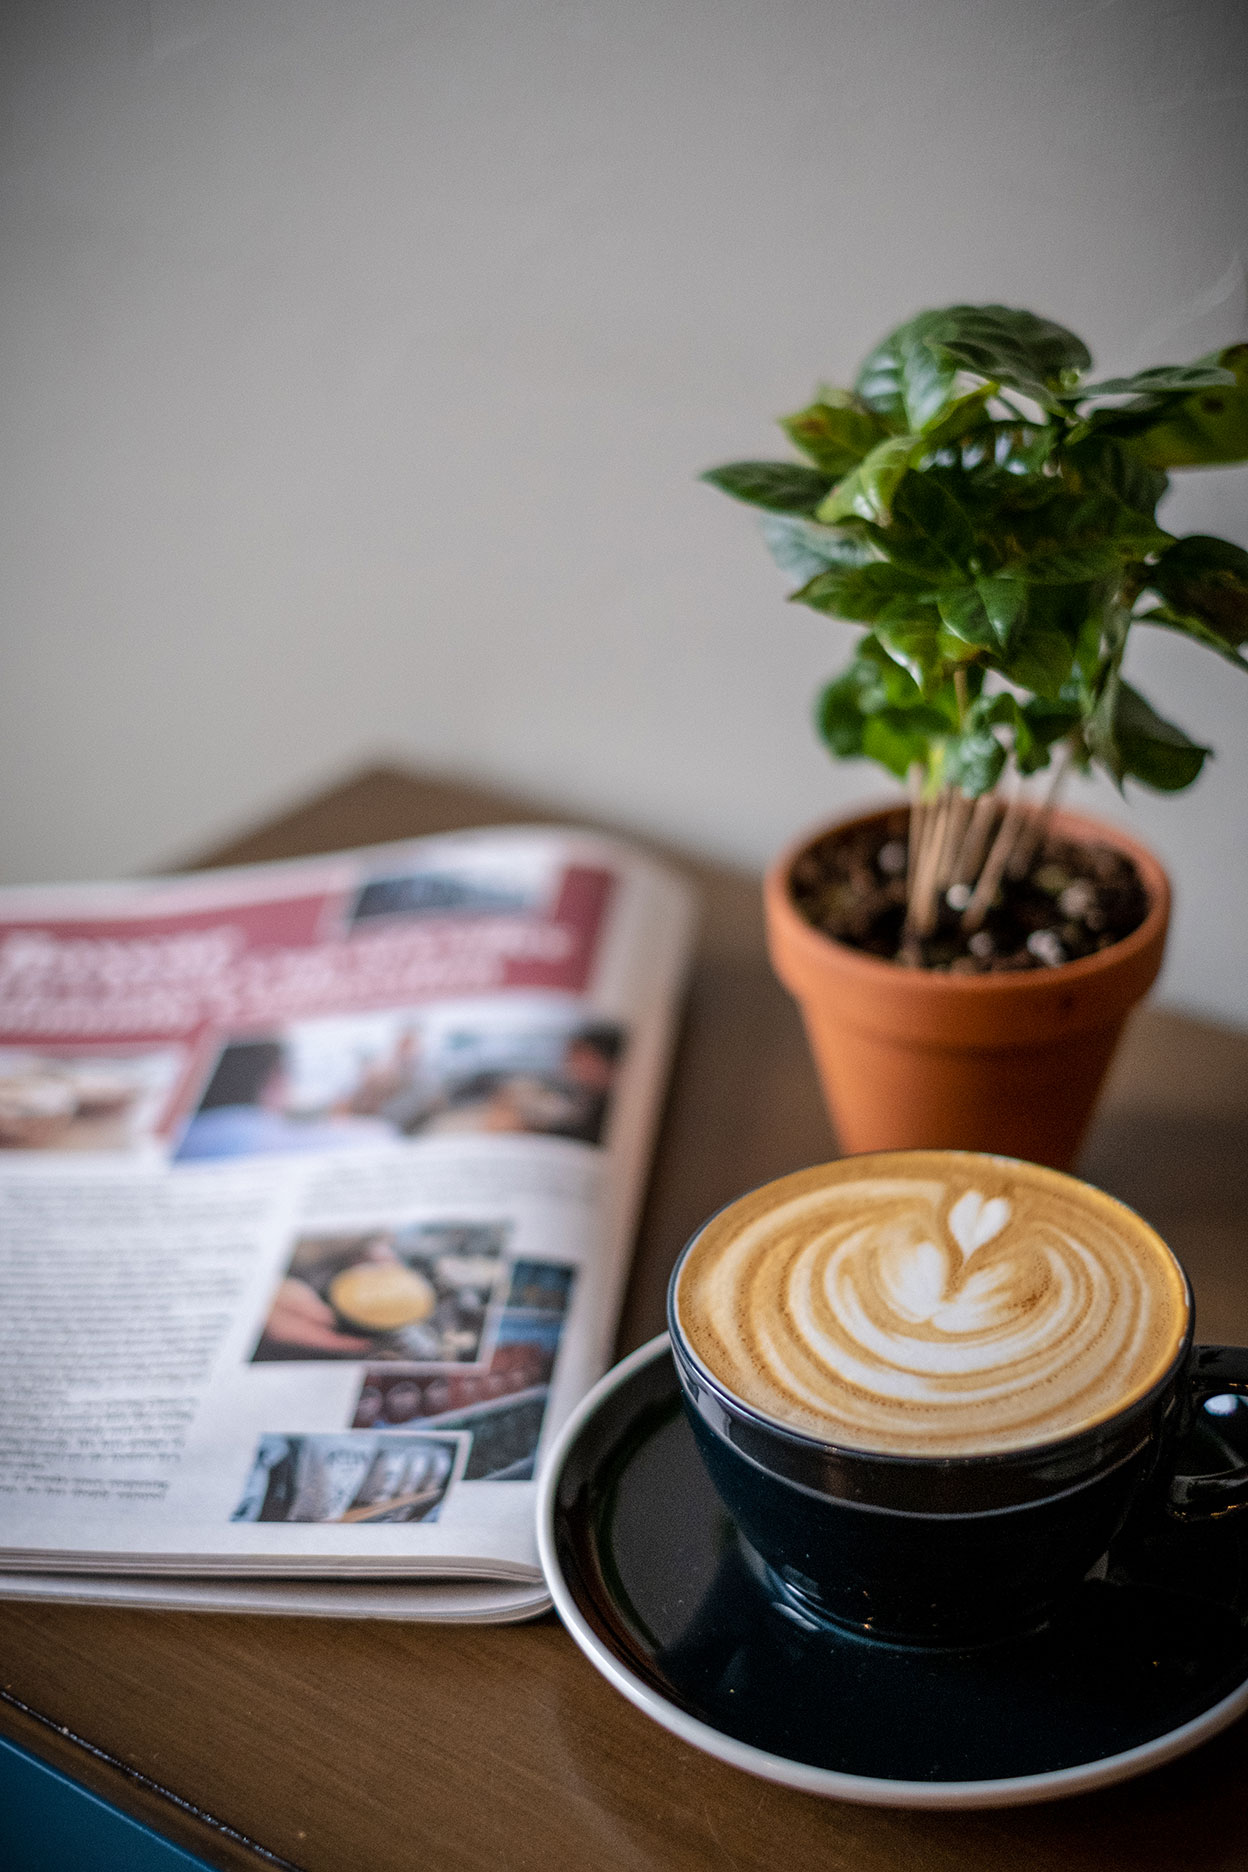 coffee-magazine-plant.jpg